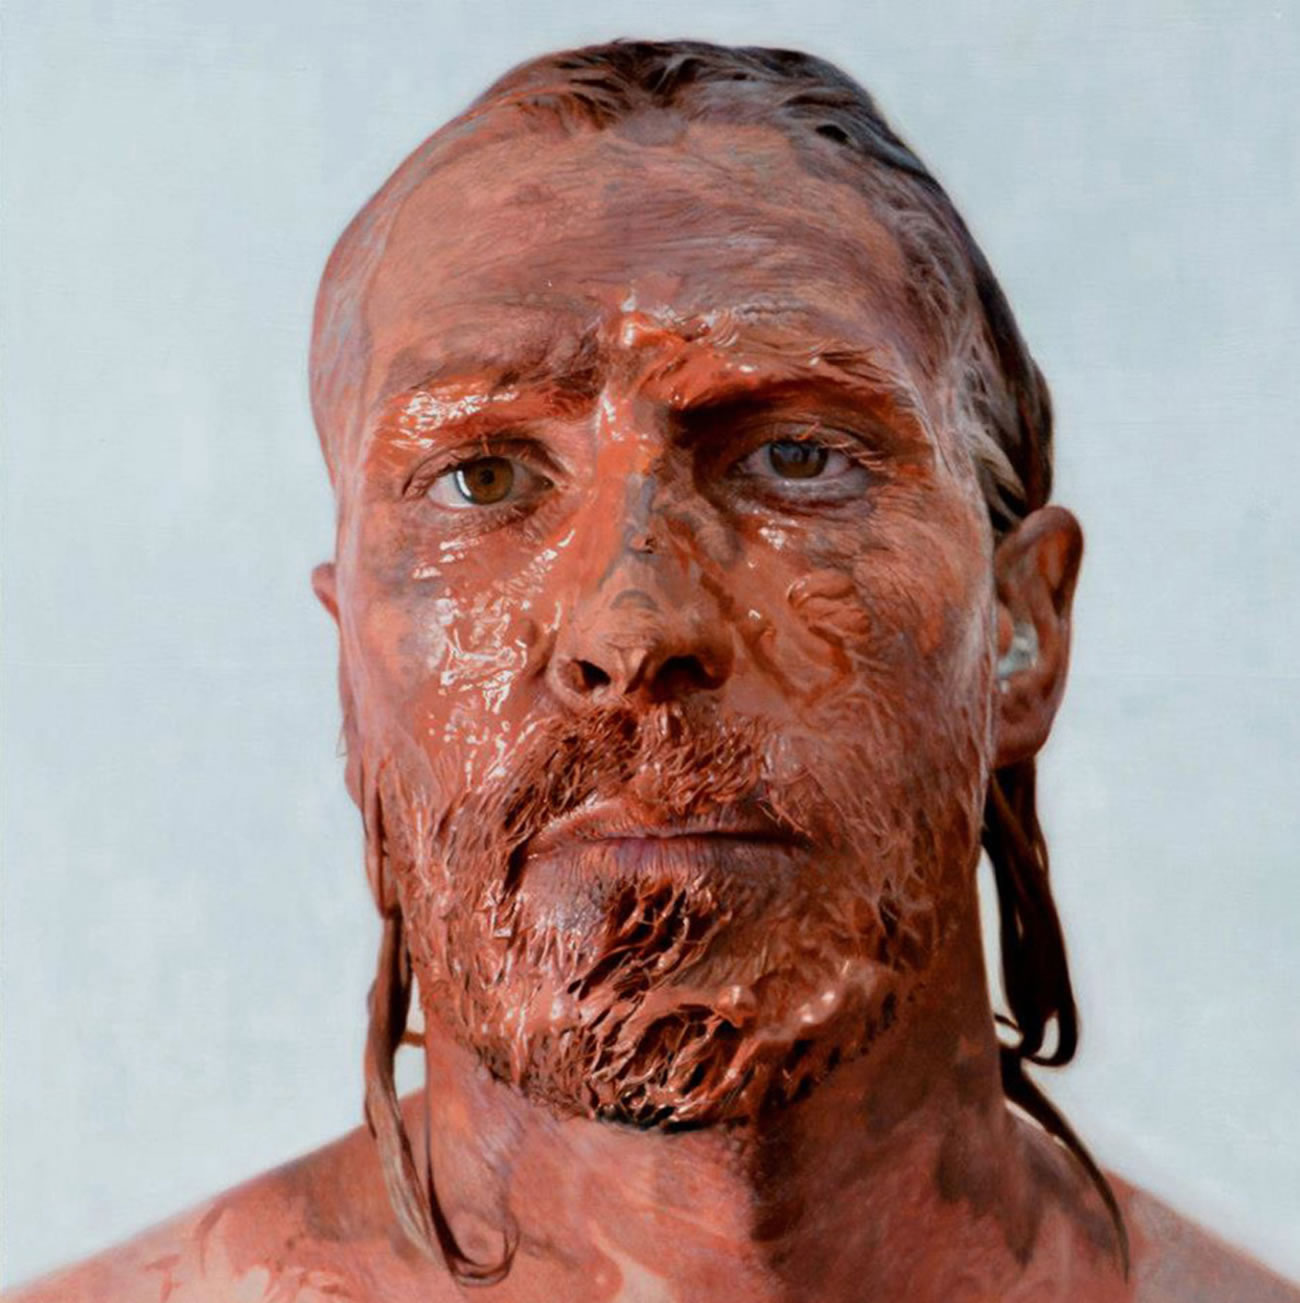 clay mud on man's face, self-portrait painting by Eloy Morales